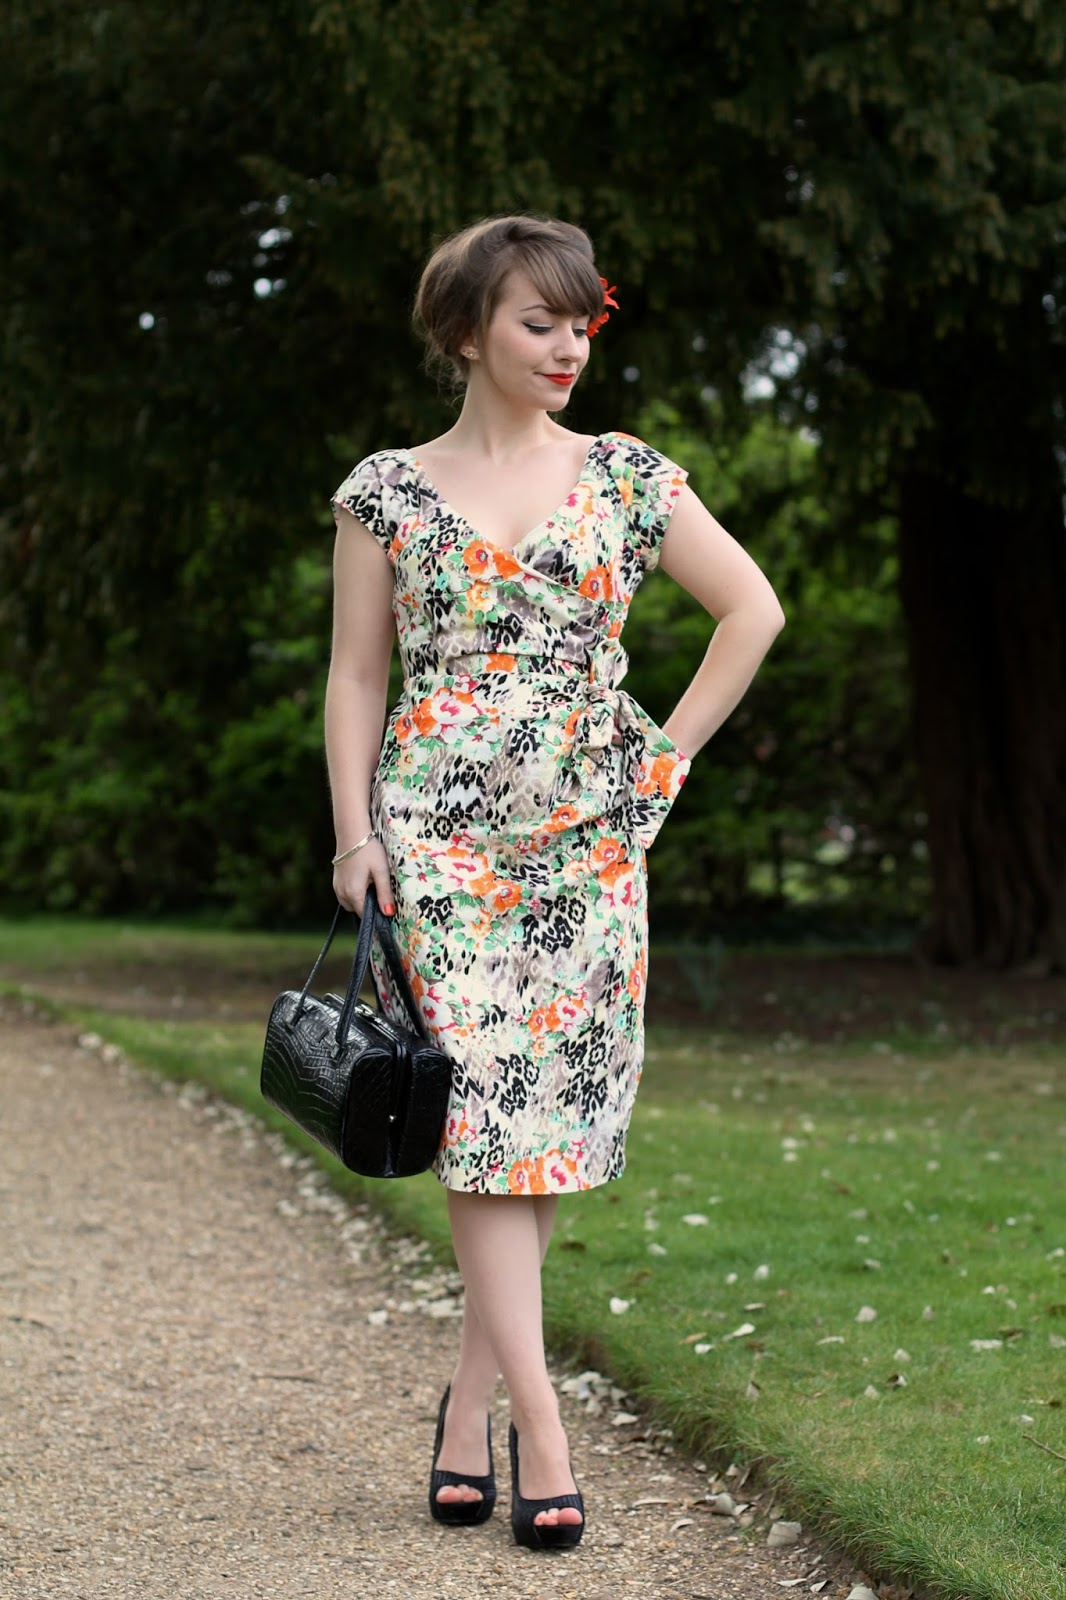 Whispering Ivy Peggy Sue dress review